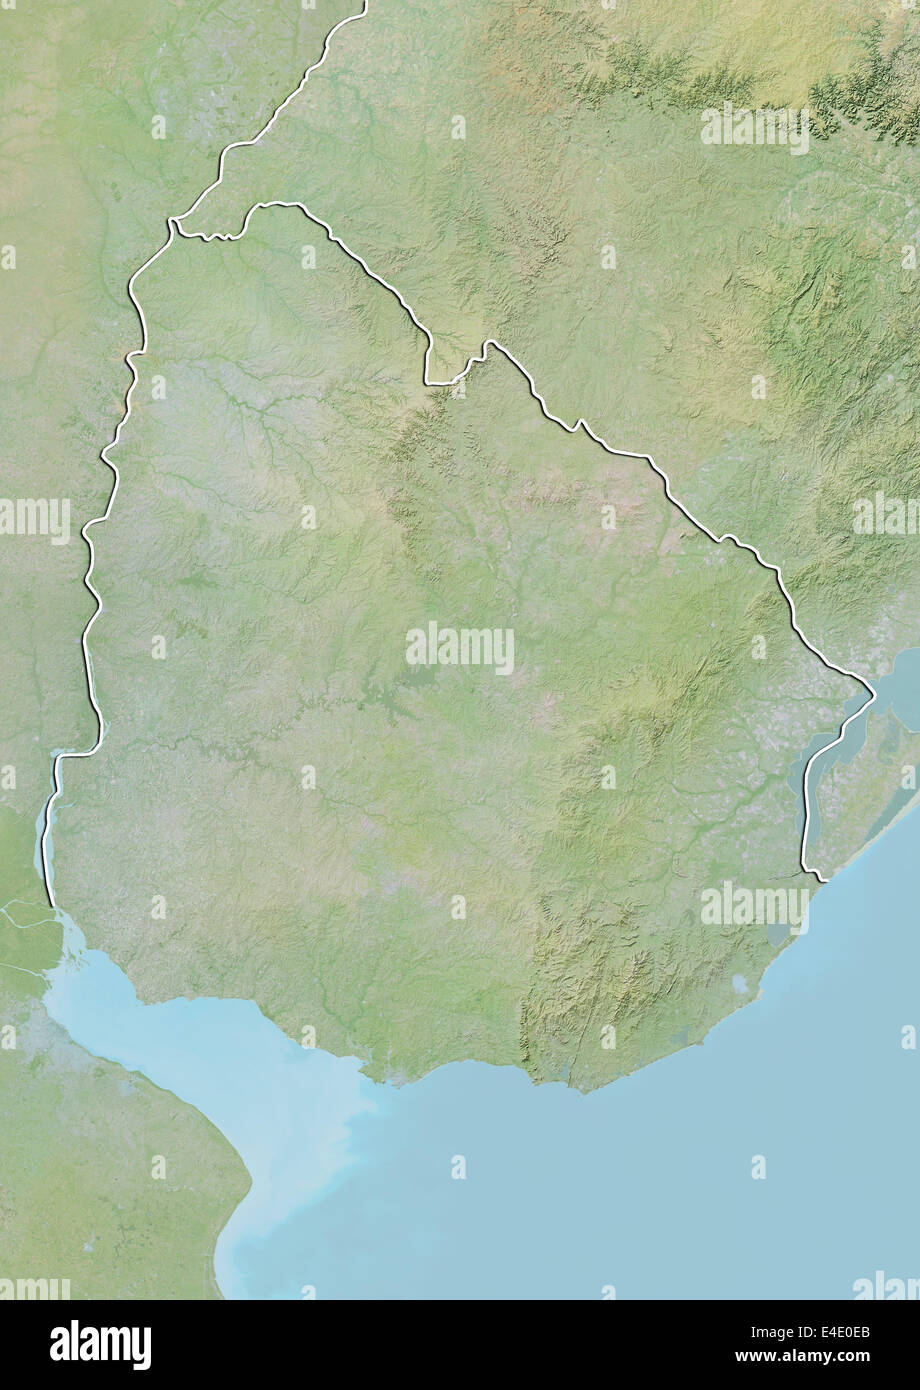 Uruguay Relief Map With Border Stock Photo Royalty Free Image - Uruguay relief map